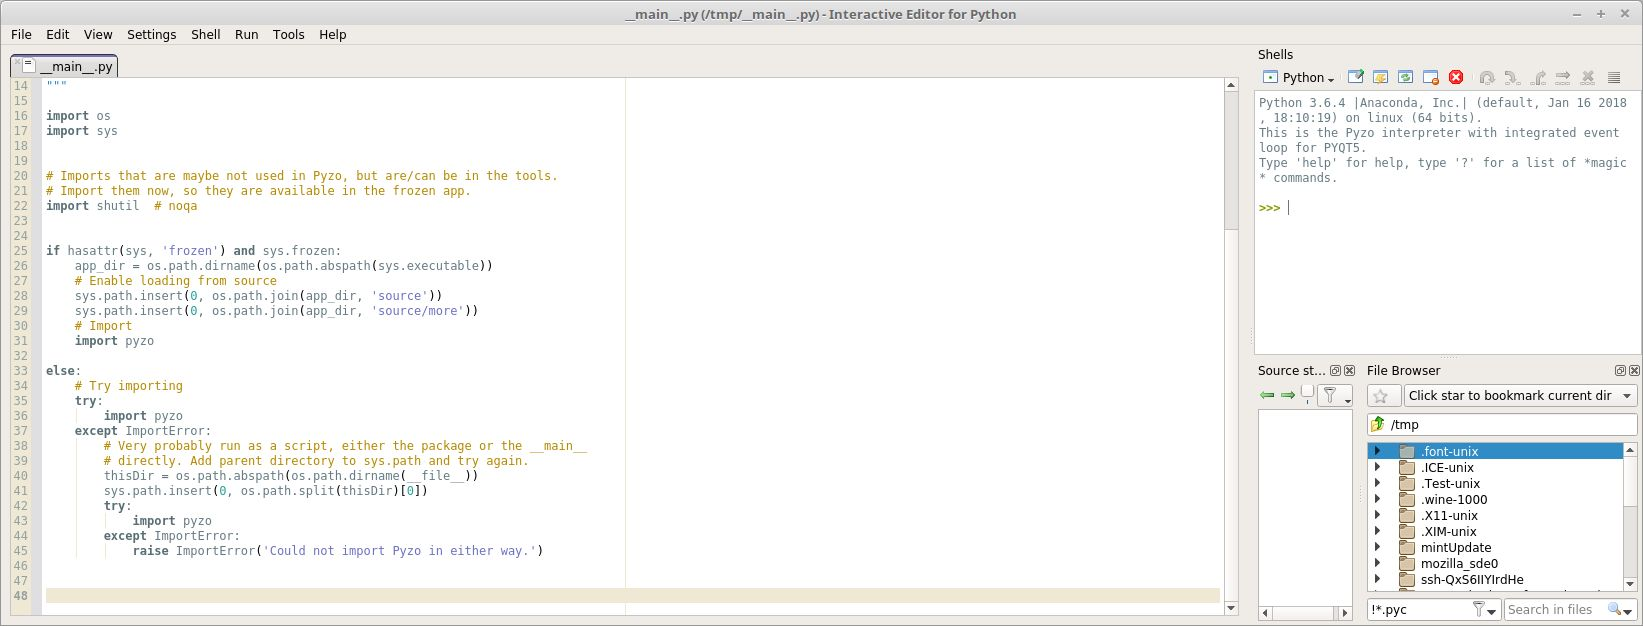 Pyzo - Cross-Platform Python IDE focused on Interactivity